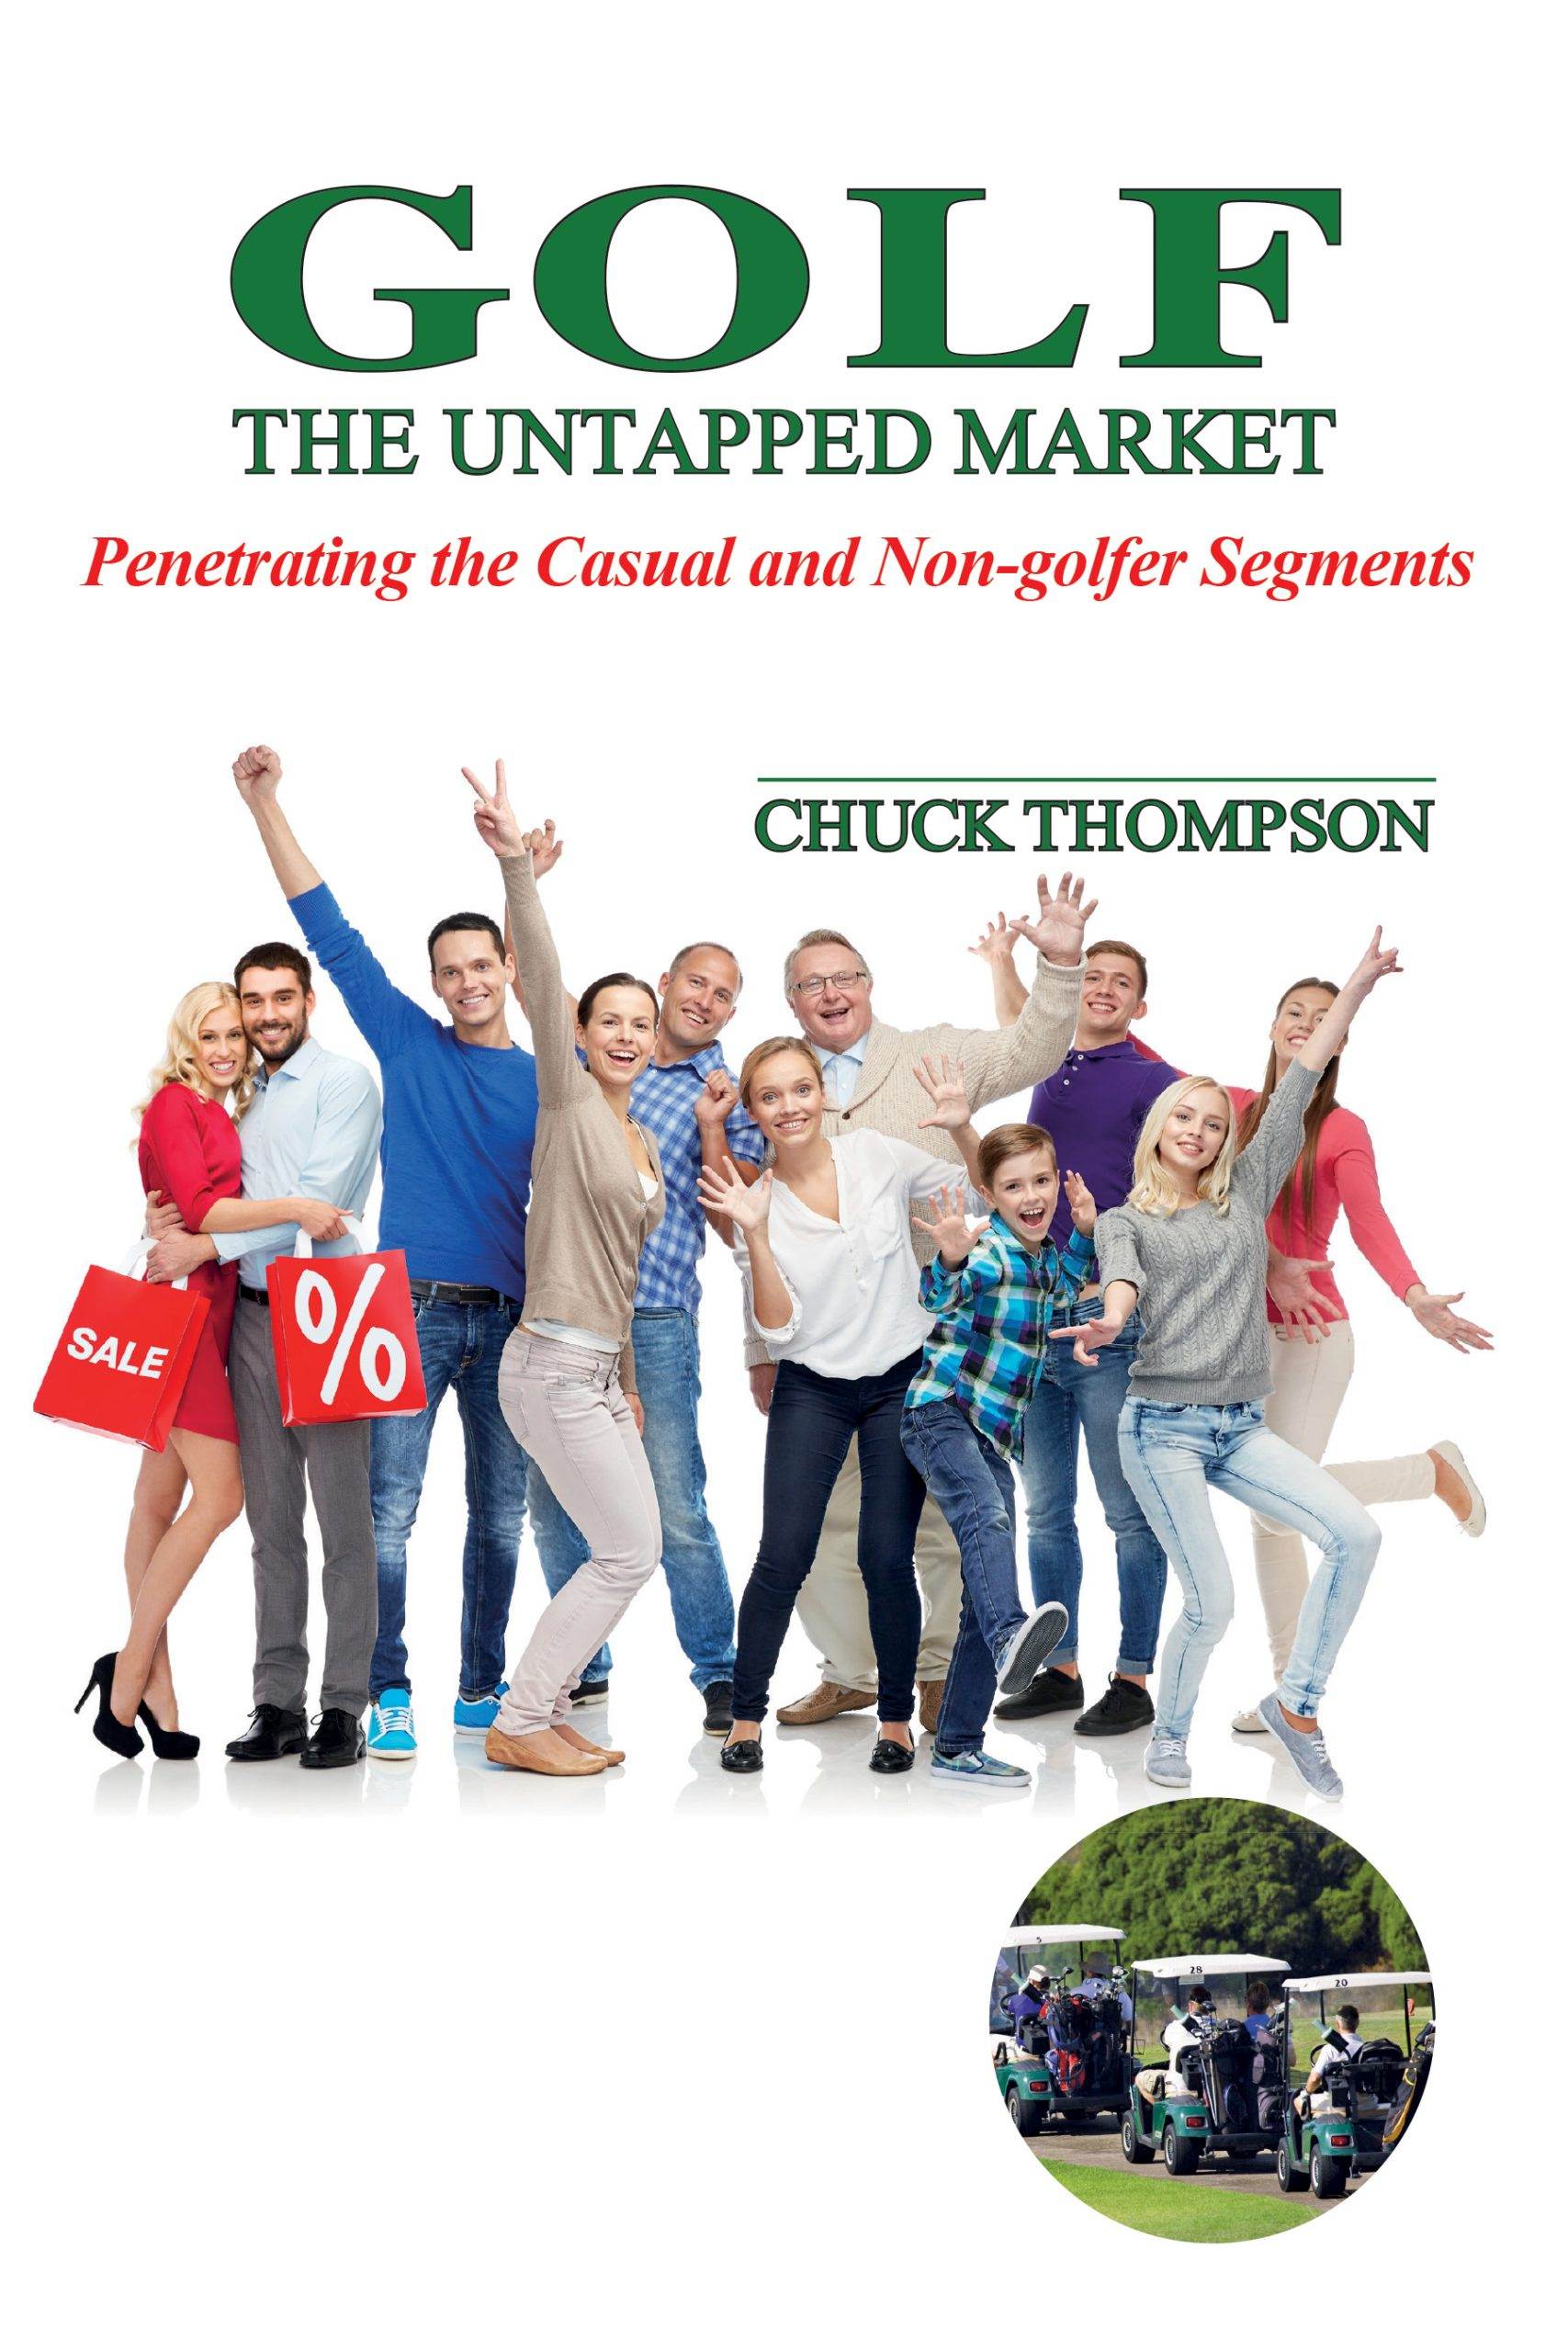 Golf: The Untapped Market (Penetrating The Casual And Non-golfer Segments) Paperback – August 30, 2017